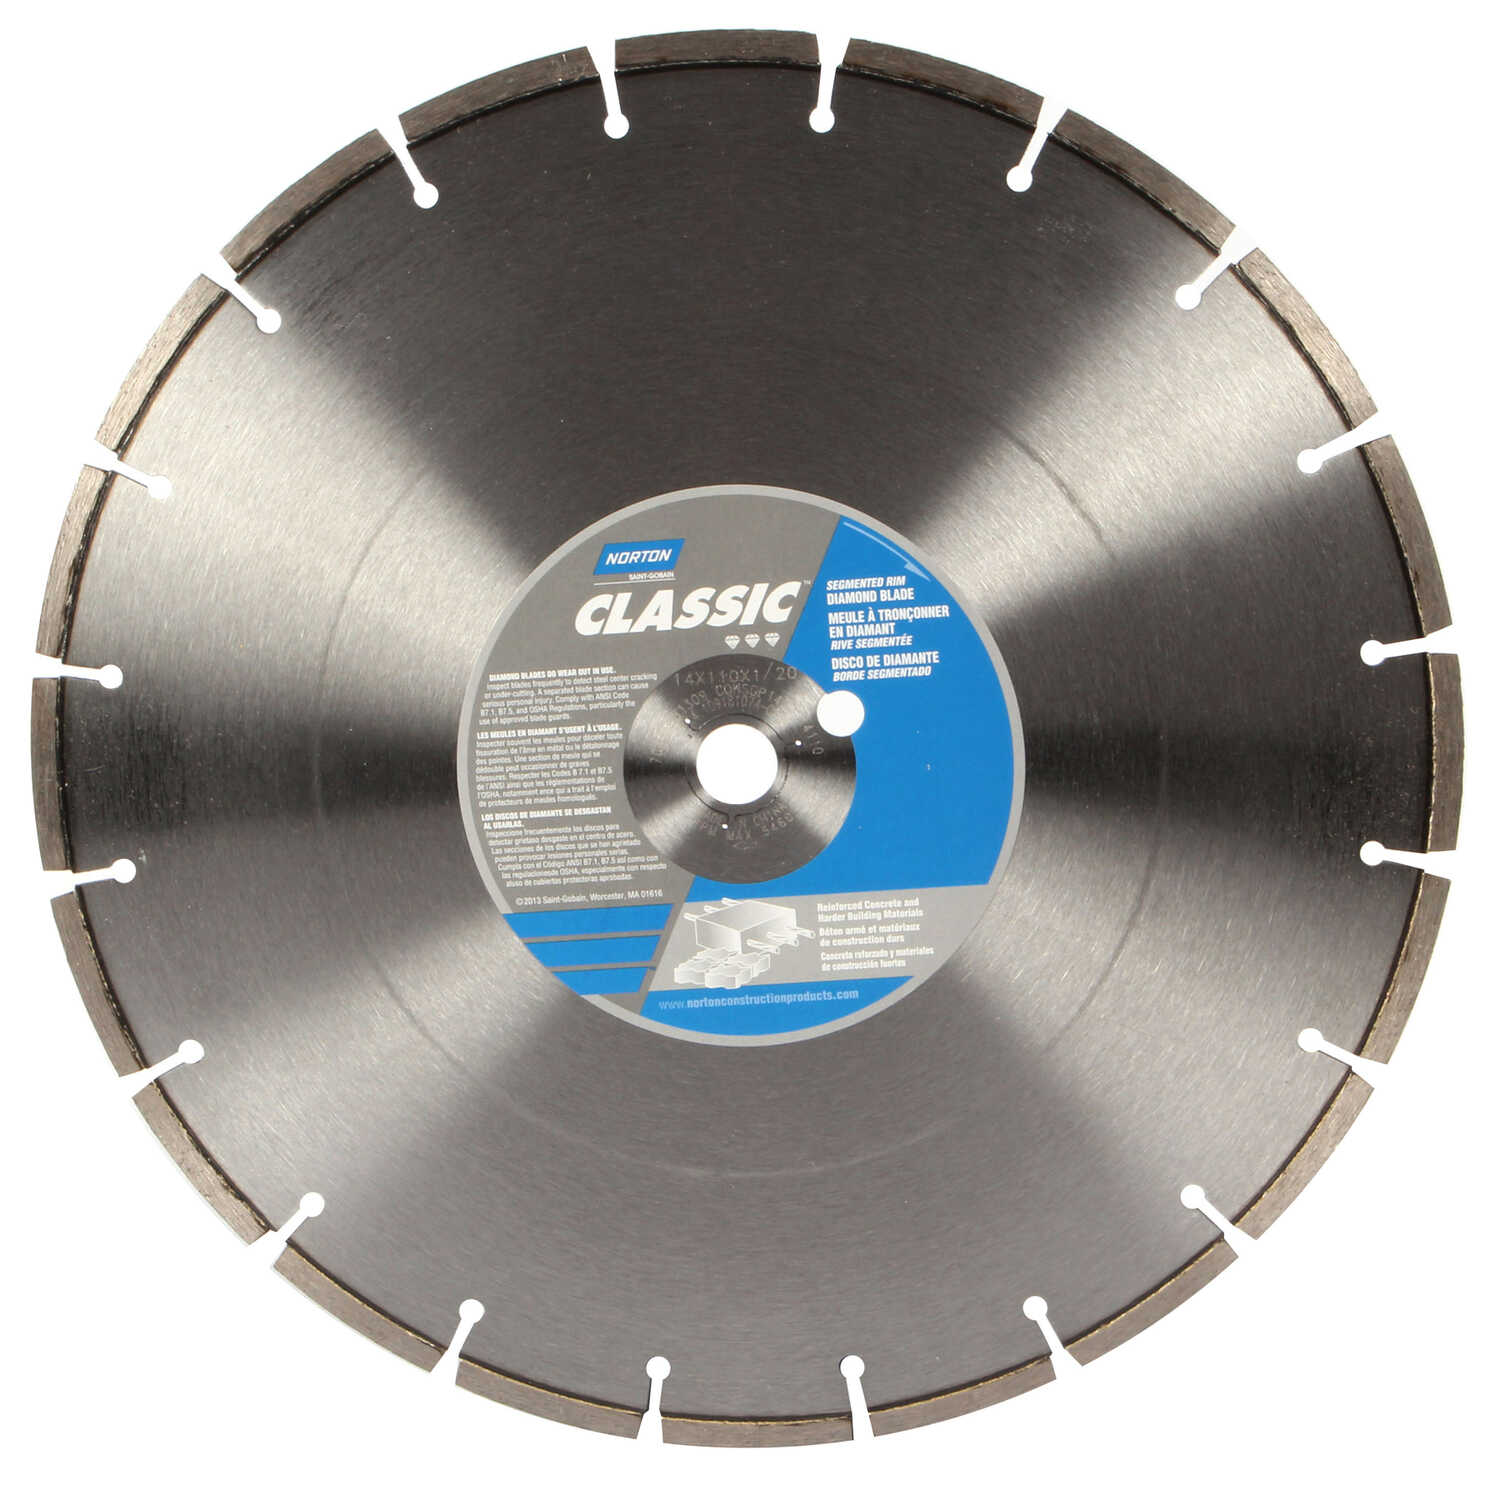 Norton  Classic  14 in. Dia. x 1 in.  Segmented Rim Circular Saw Blade  Diamond  1 pk